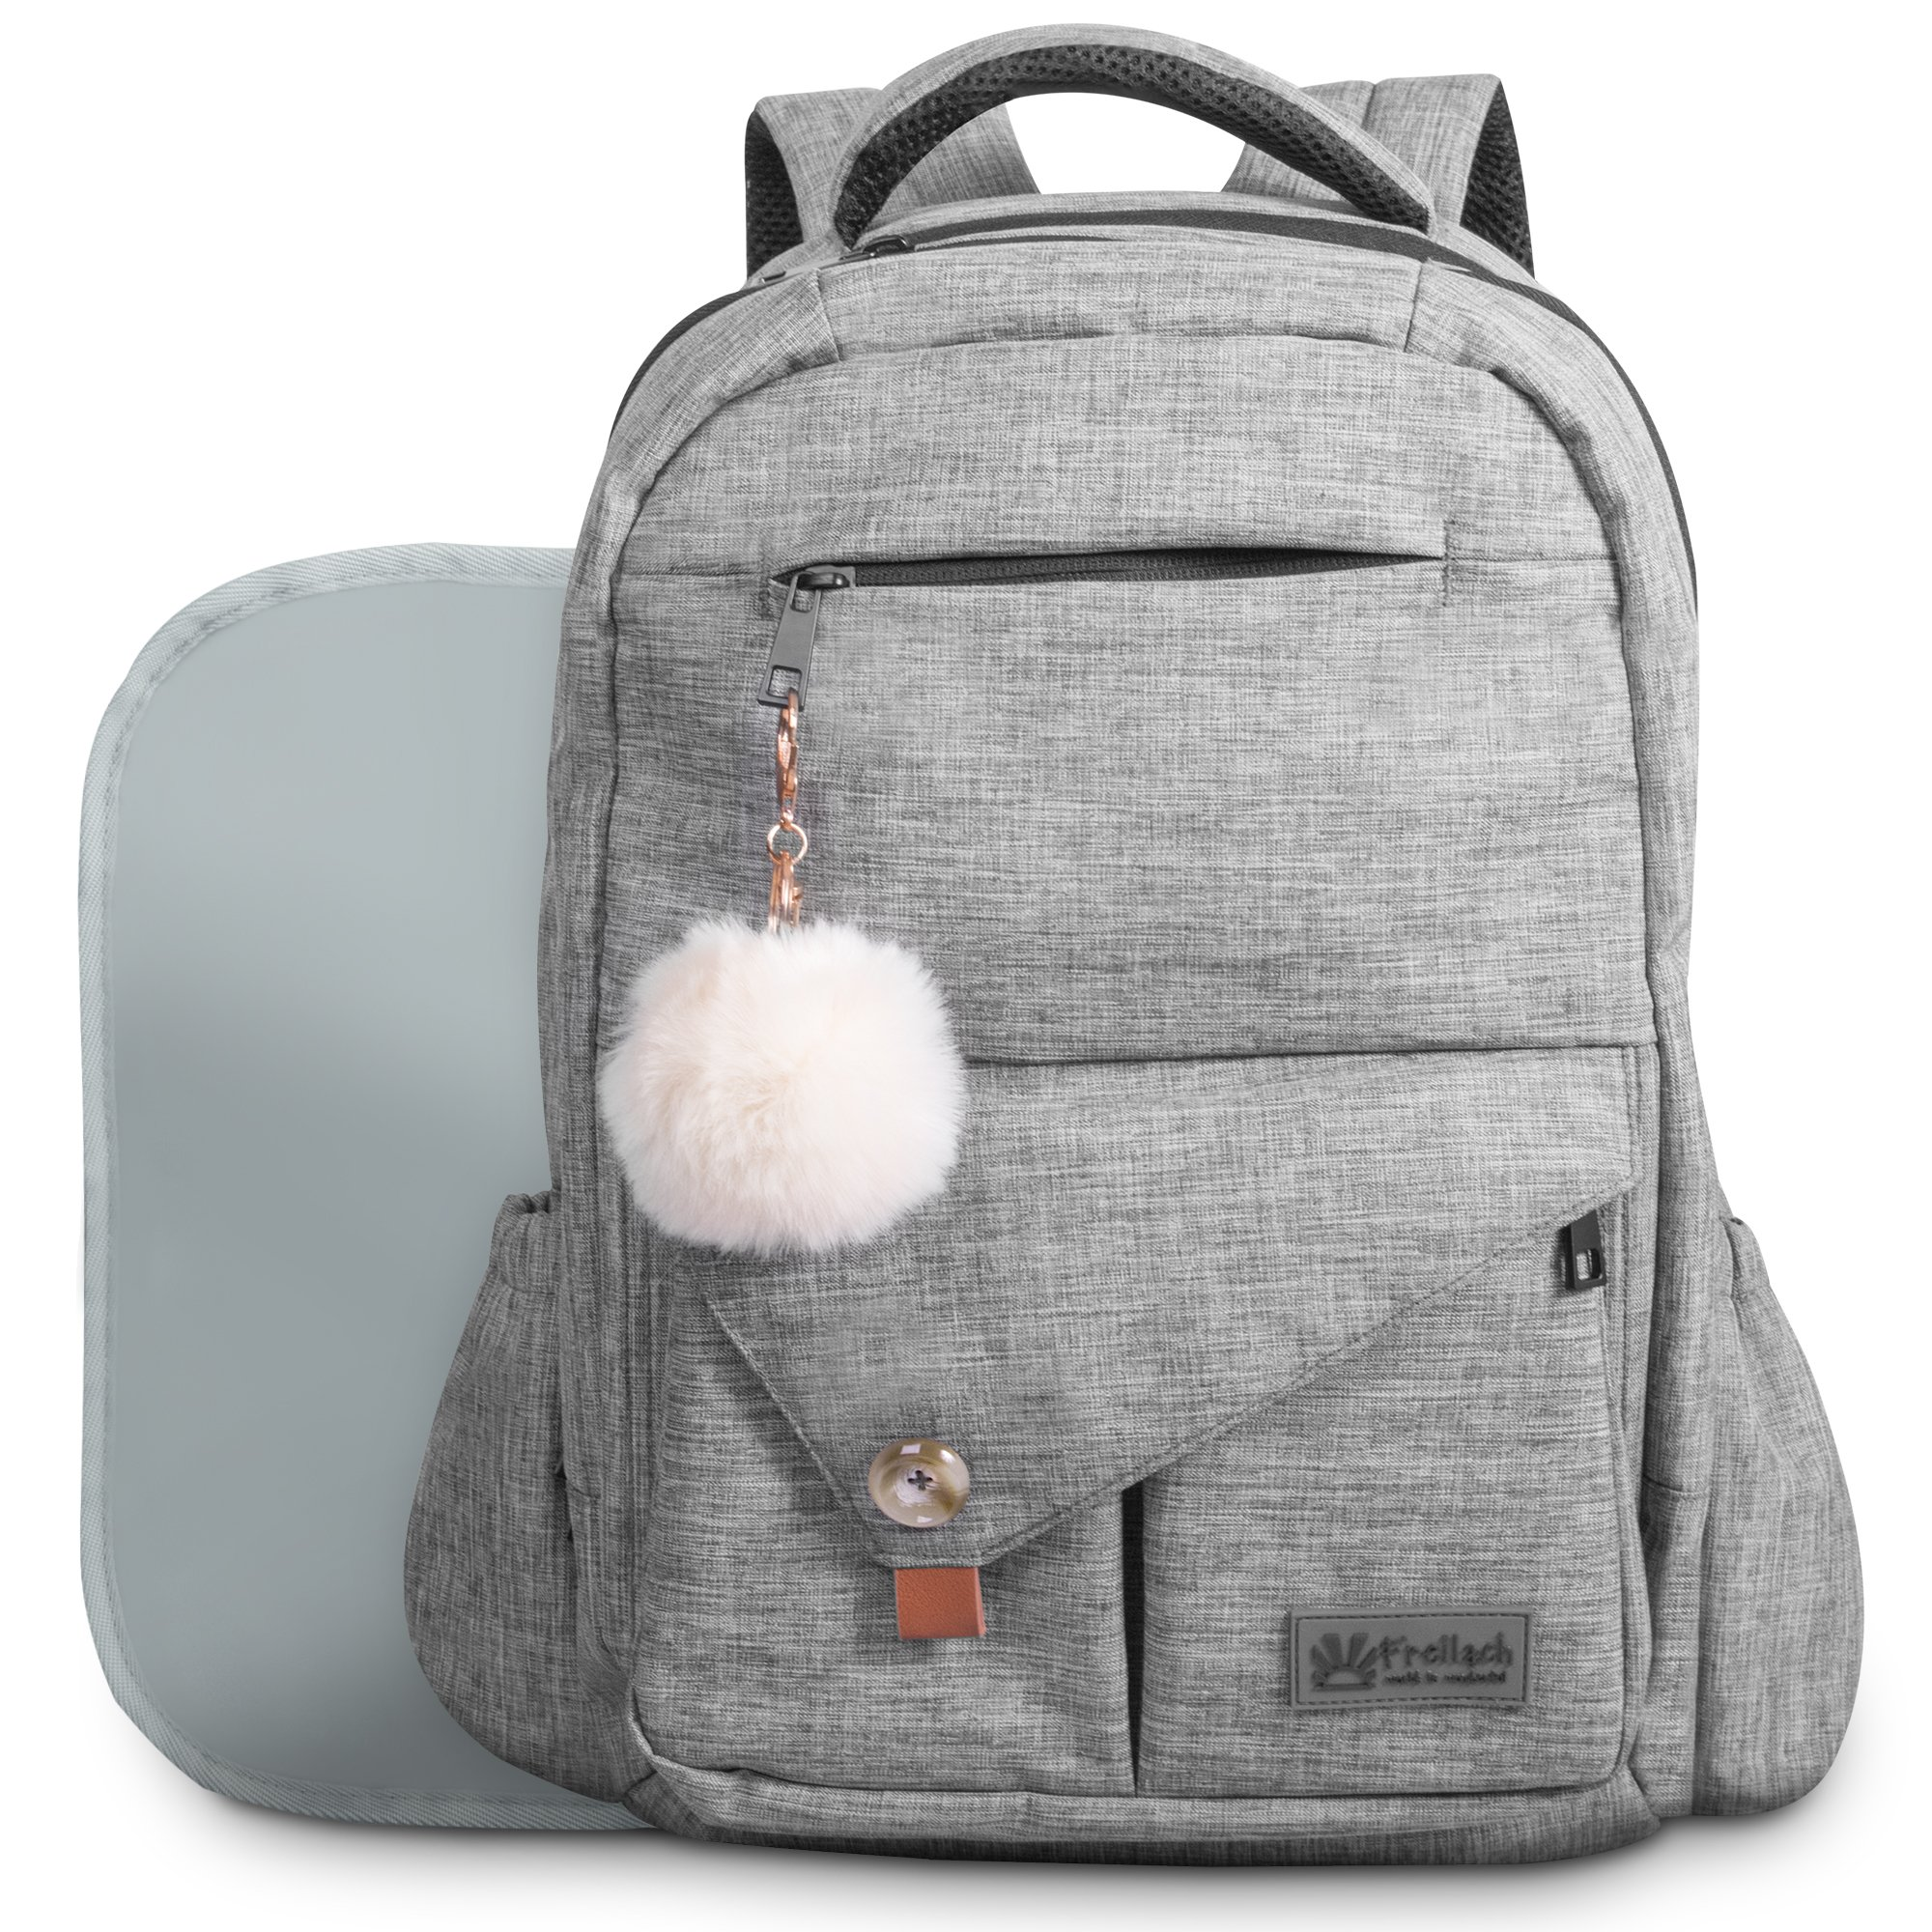 Baby Diaper Bag Backpack for Mom and Dad W/ Changing Pad & Cute Pompon Keychain: Fit Everything Inside! Grey Unisex Organizer, Large Waterproof Pack, Fits on Back, Stroller or as a Handheld Nappy Tote by Freilach